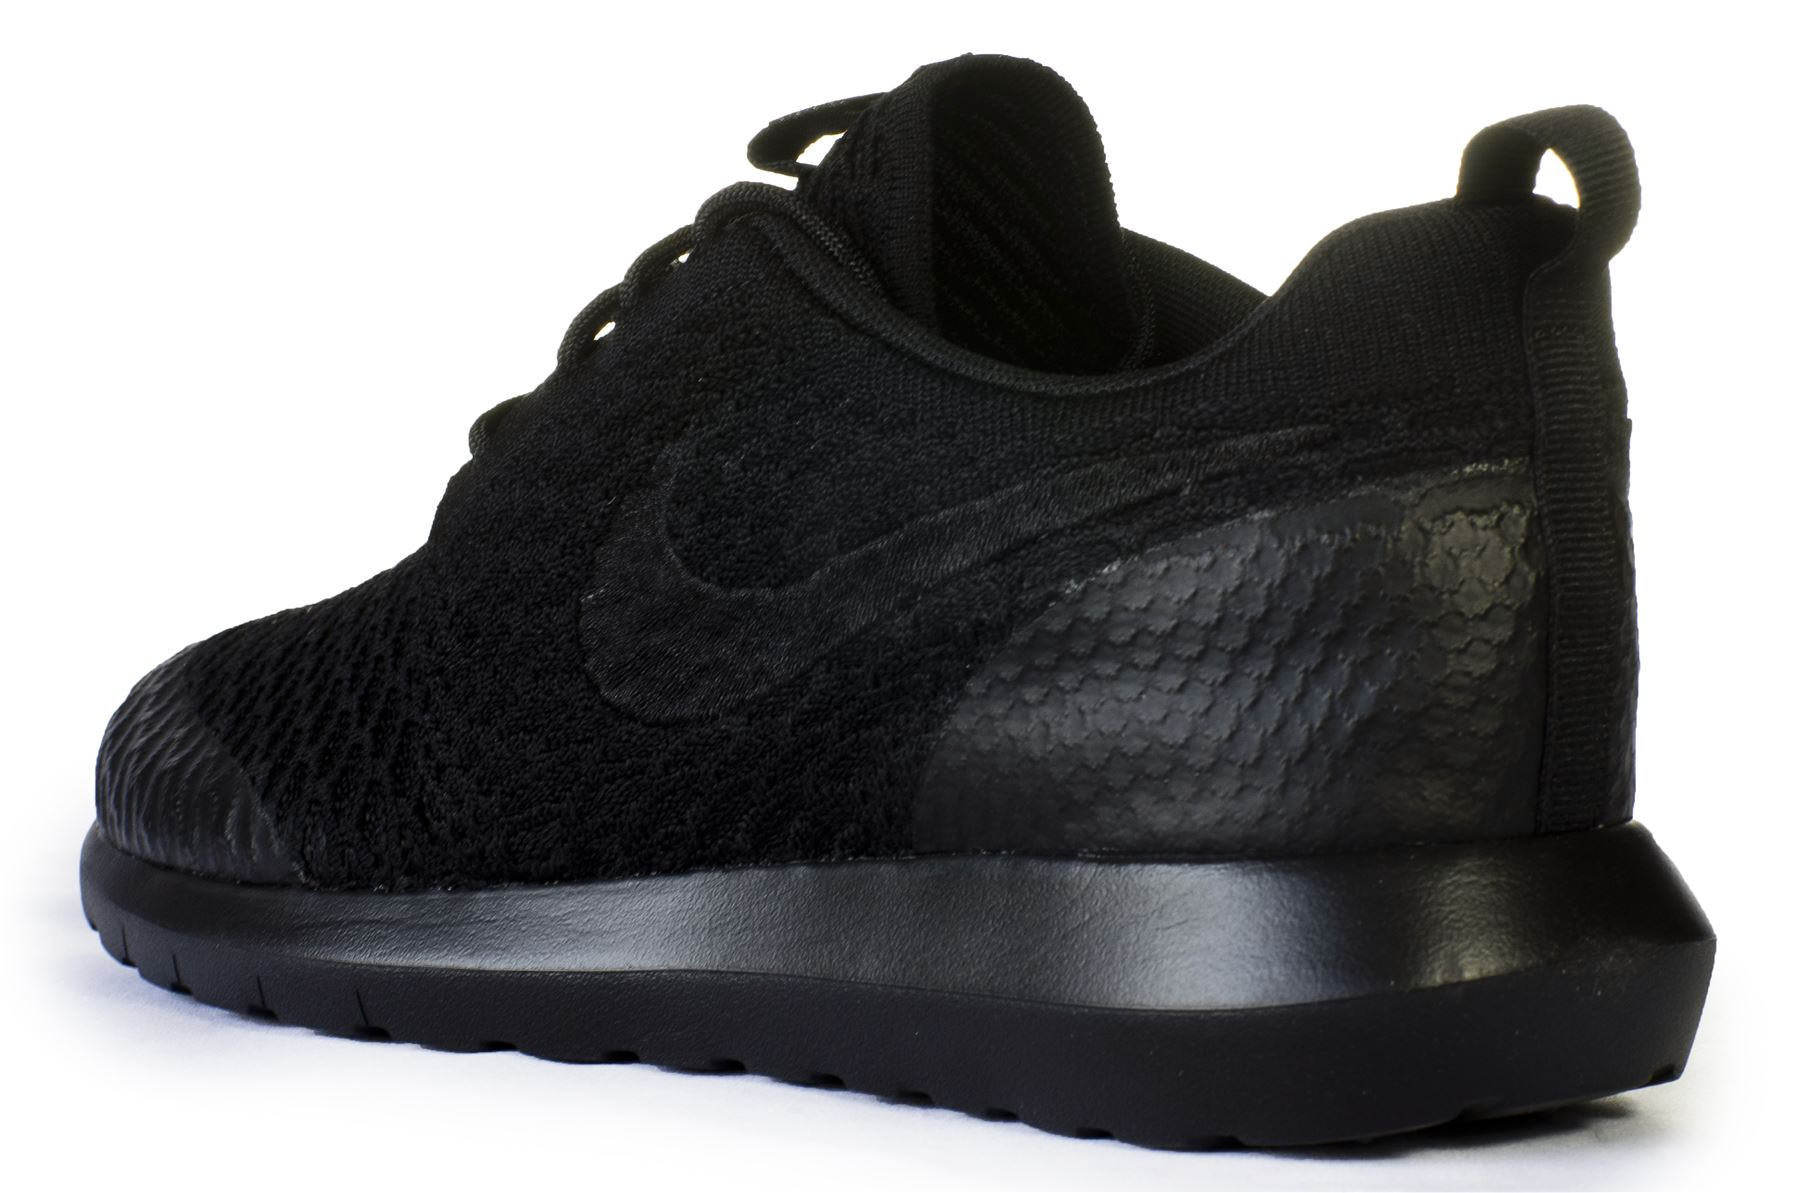 Nike Roshe Run NM Flyknit SE Running Trainers in Black 816531 001